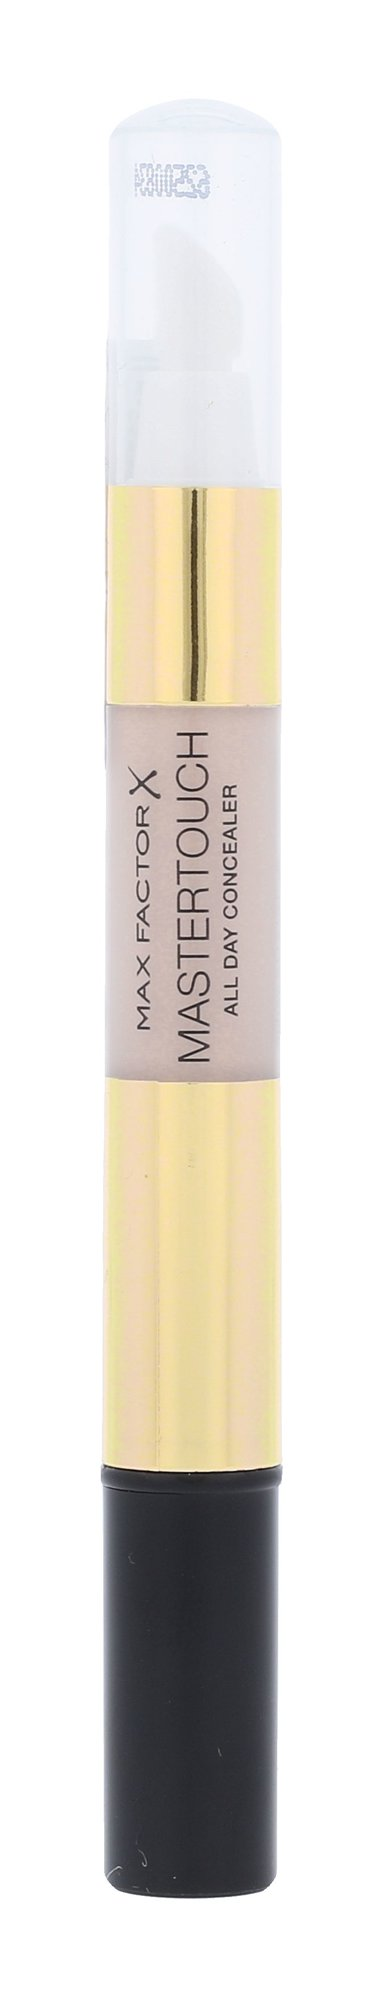 Max Factor Mastertouch Cosmetic 1,5ml 303 Ivory